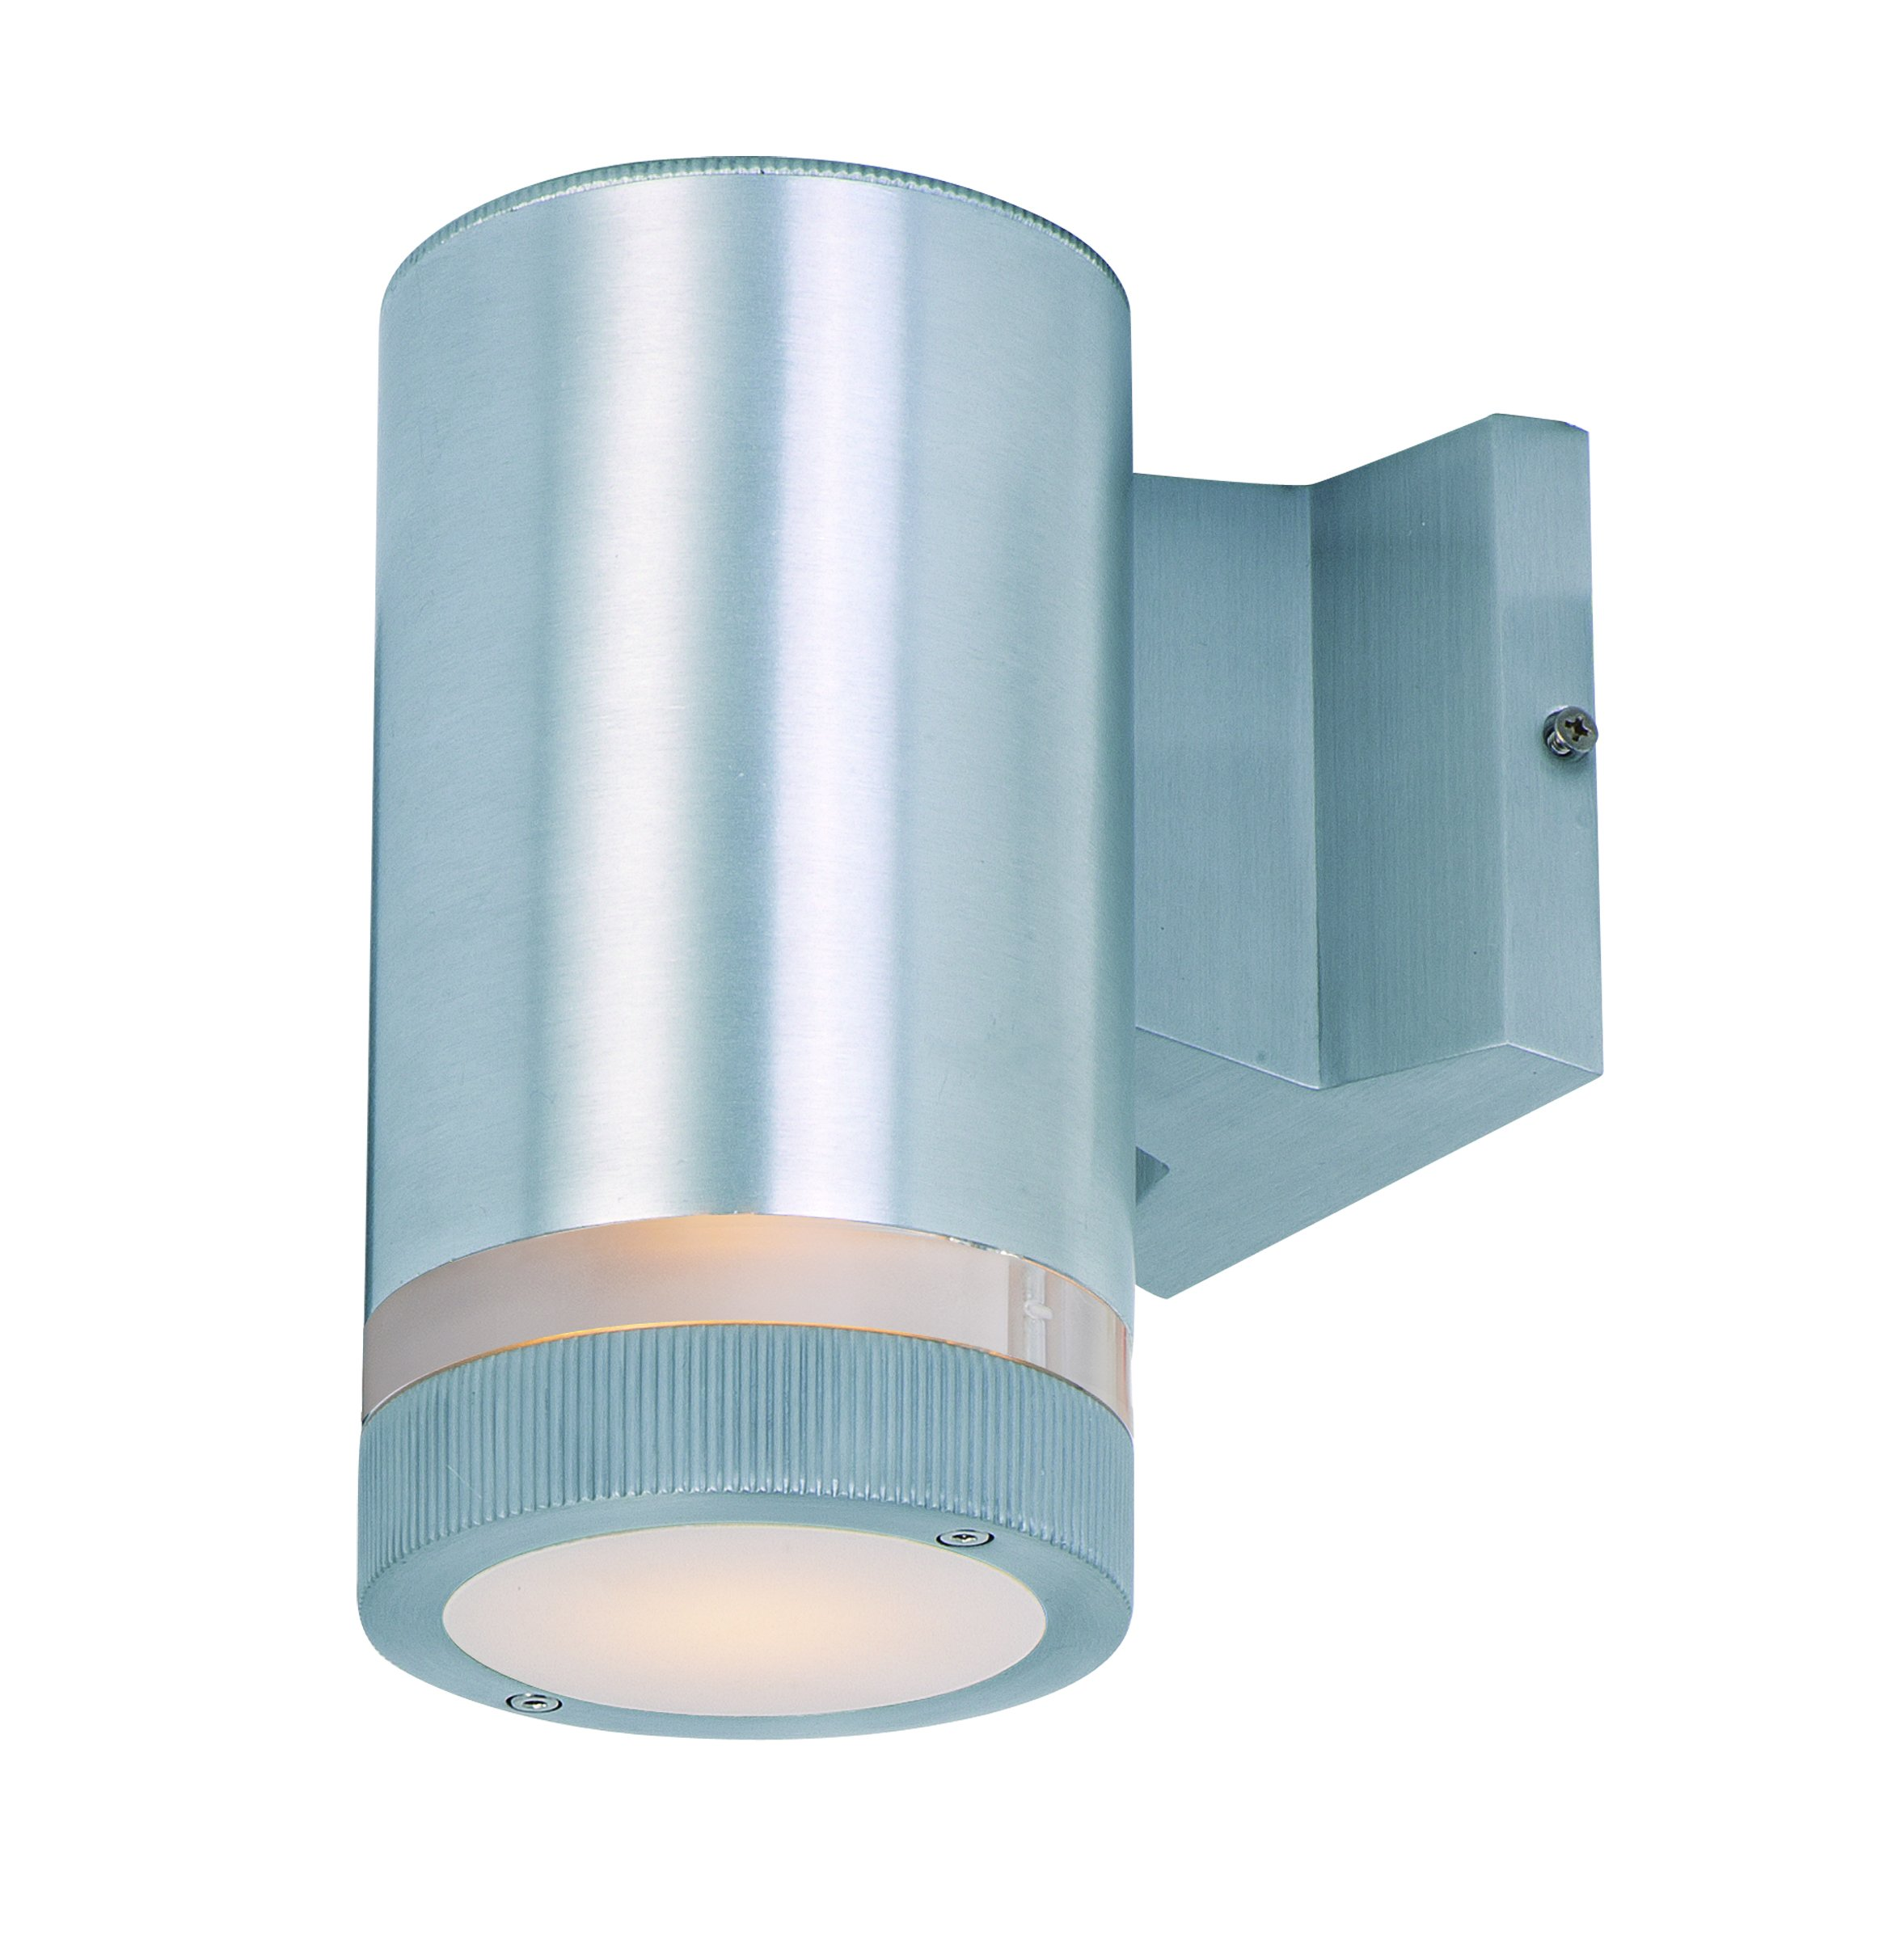 Maxim 86110AL Lightray LED 1-Light Wall Sconce, Brushed Aluminum Finish, Glass, PCB LED Bulb , 60W Max., Dry Safety Rating, Standard Dimmable, Shade Material, Rated Lumens